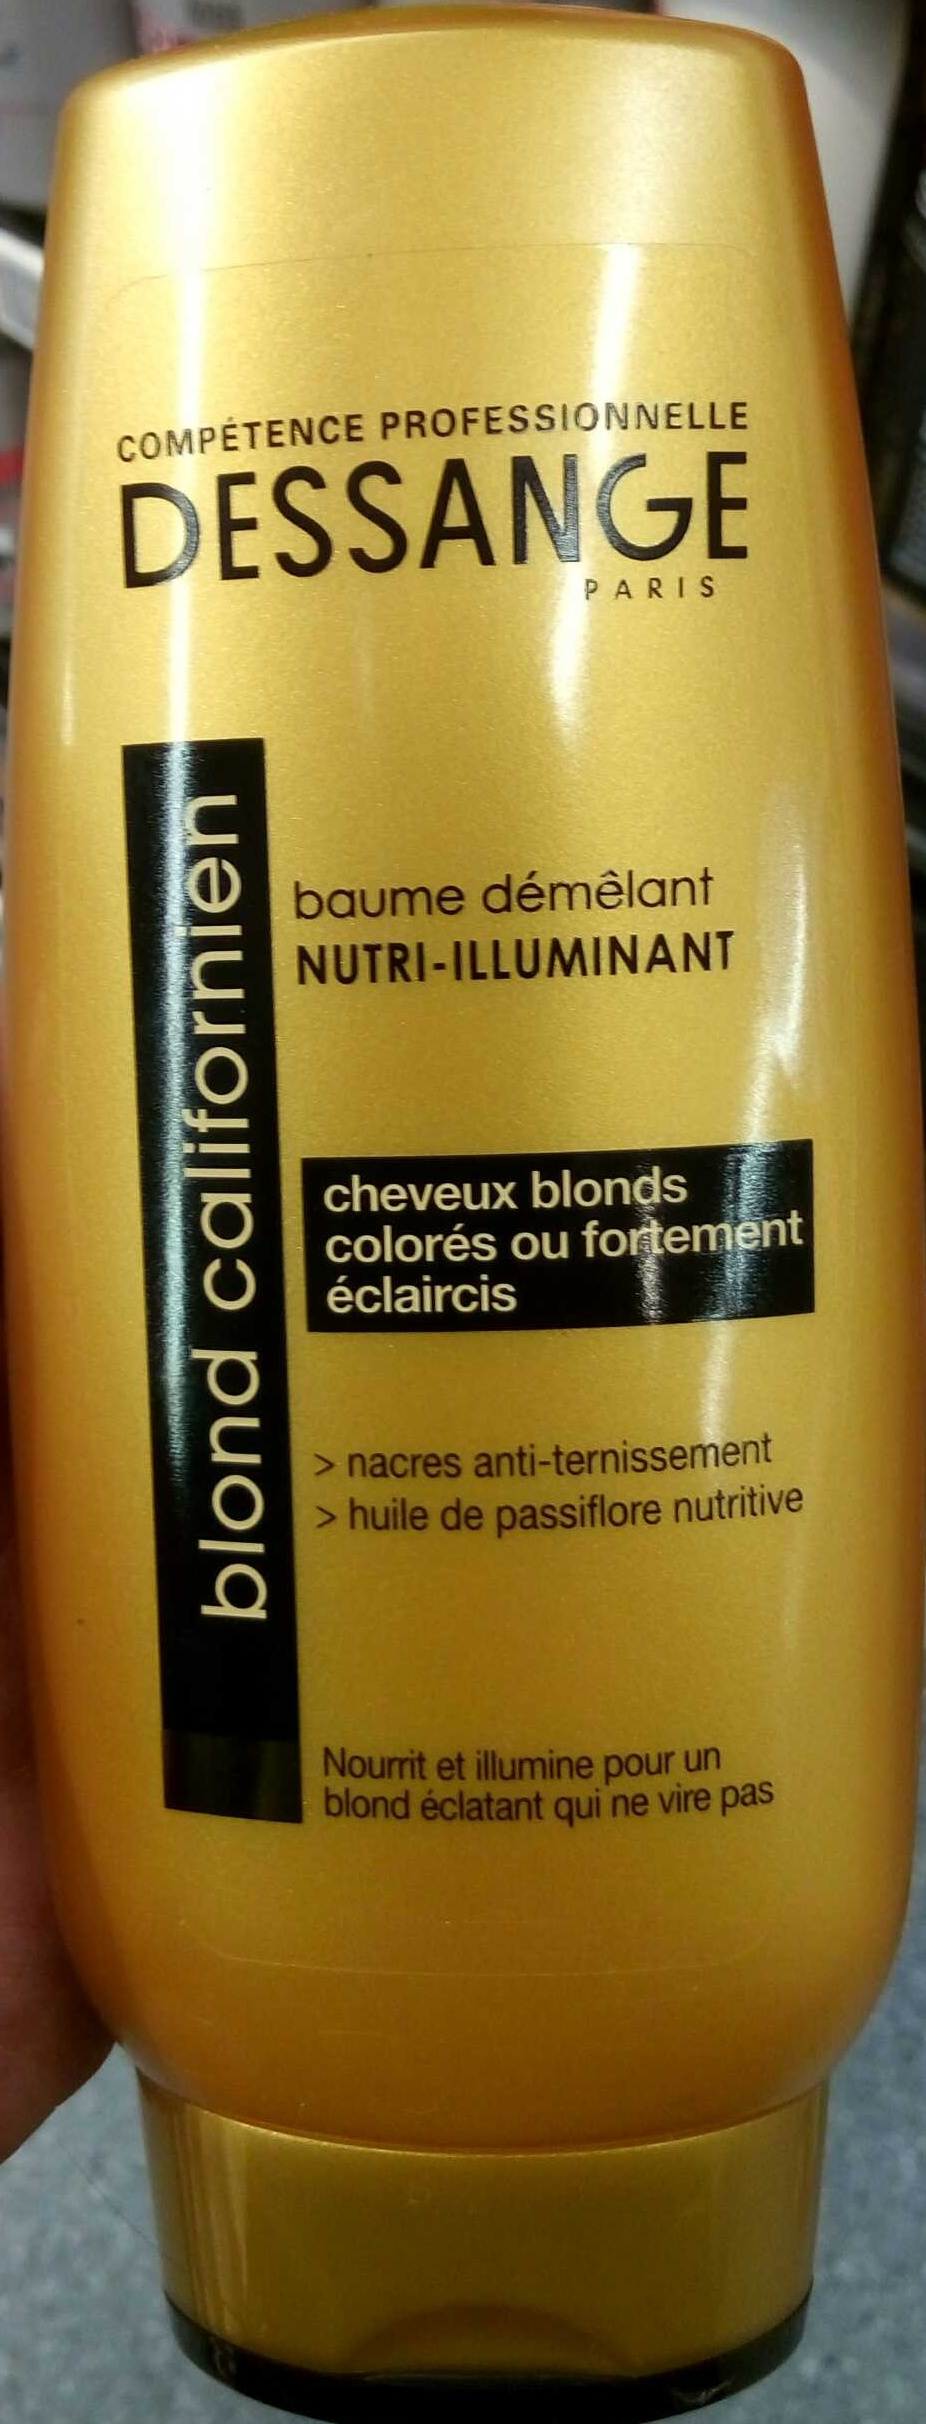 Baume démêlant nutri-illuminant blond californien - Product